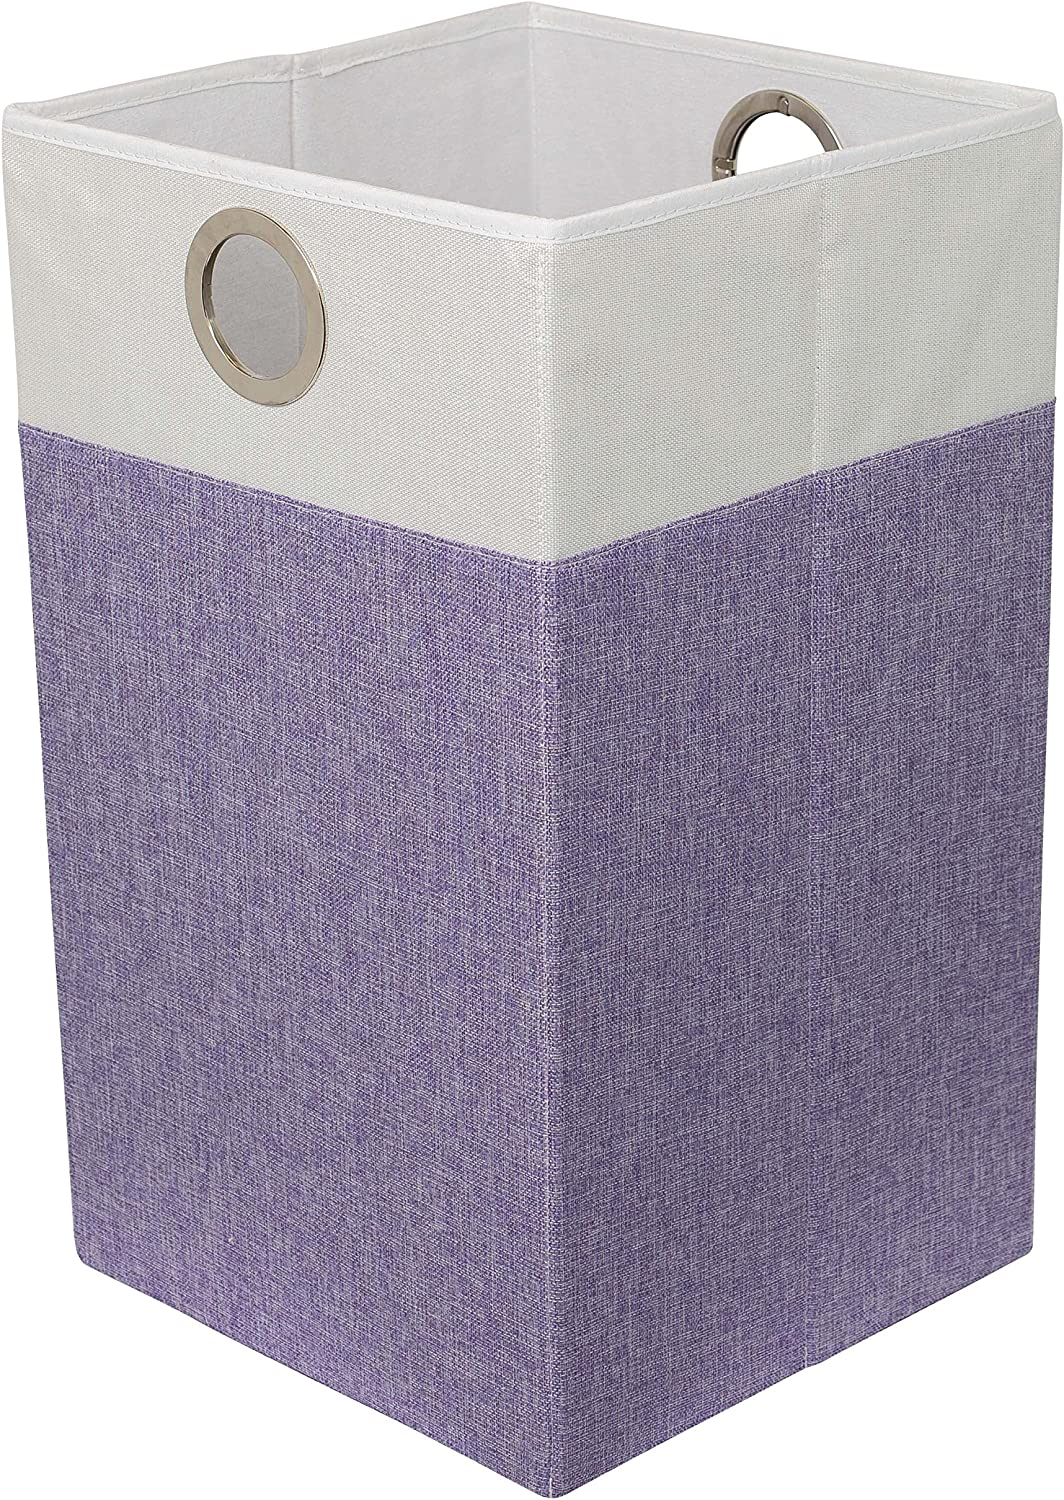 BIRDROCK HOME Folding Cloth Laundry Hamper with Handles - Dirty Clothes Sorter - Easy Storage - Collapsible - Purple and White